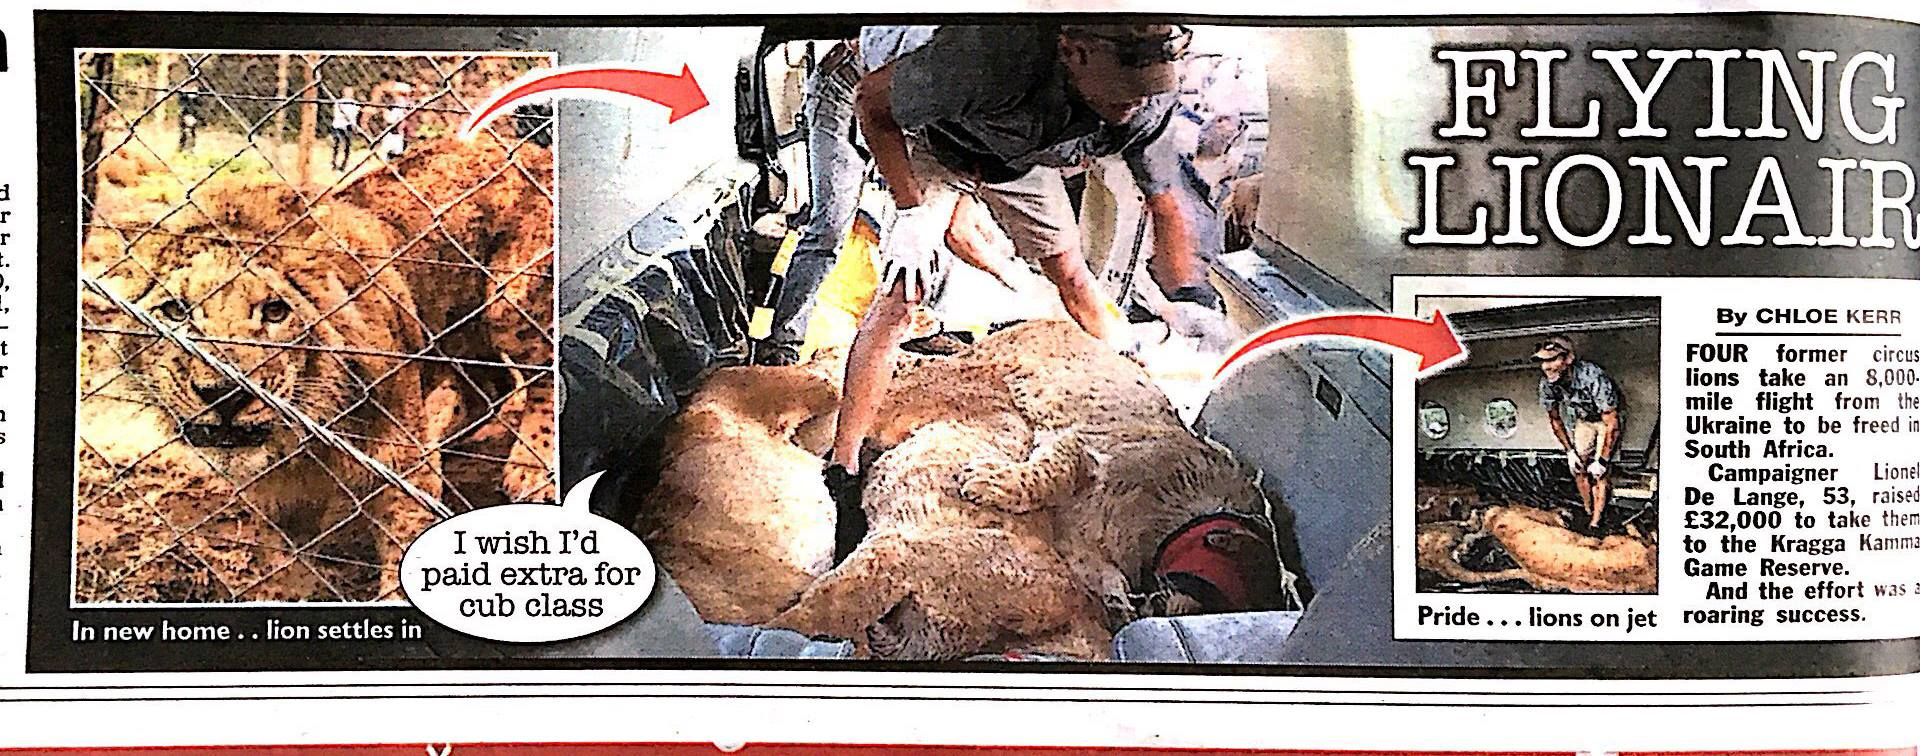 The Sun – Flying Lion-Air with this amazing lion rescue from Ukraine to South Africa